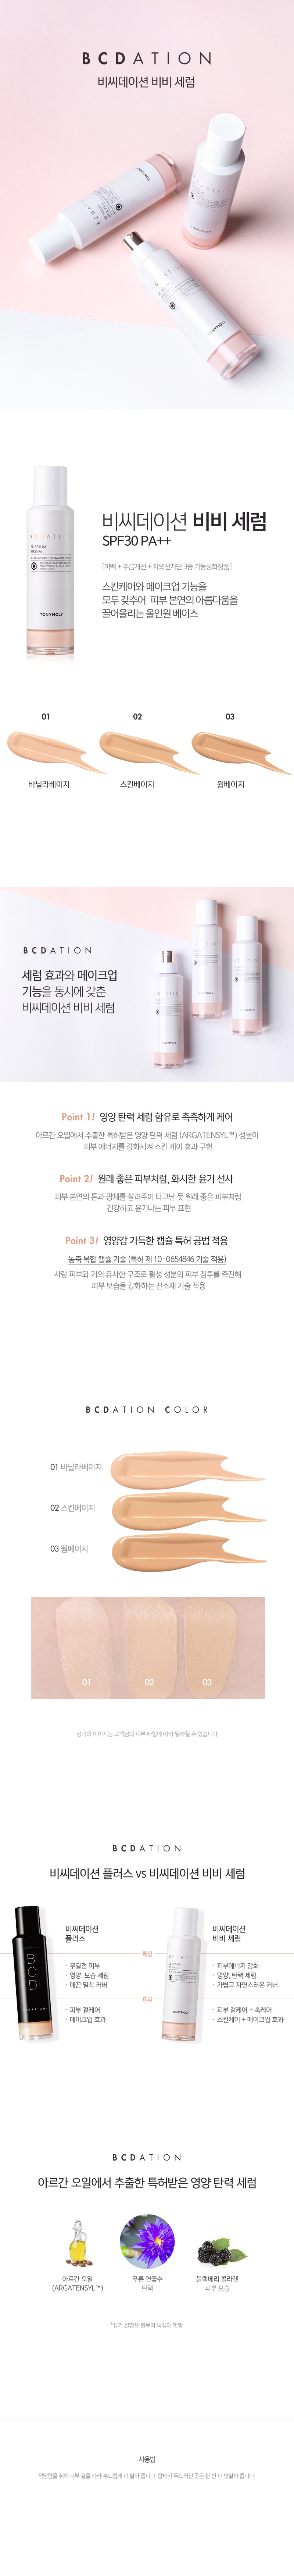 Tony Moly BCDation BB Serum korean cosmetic makeup product online shop malaysia spain portugal1